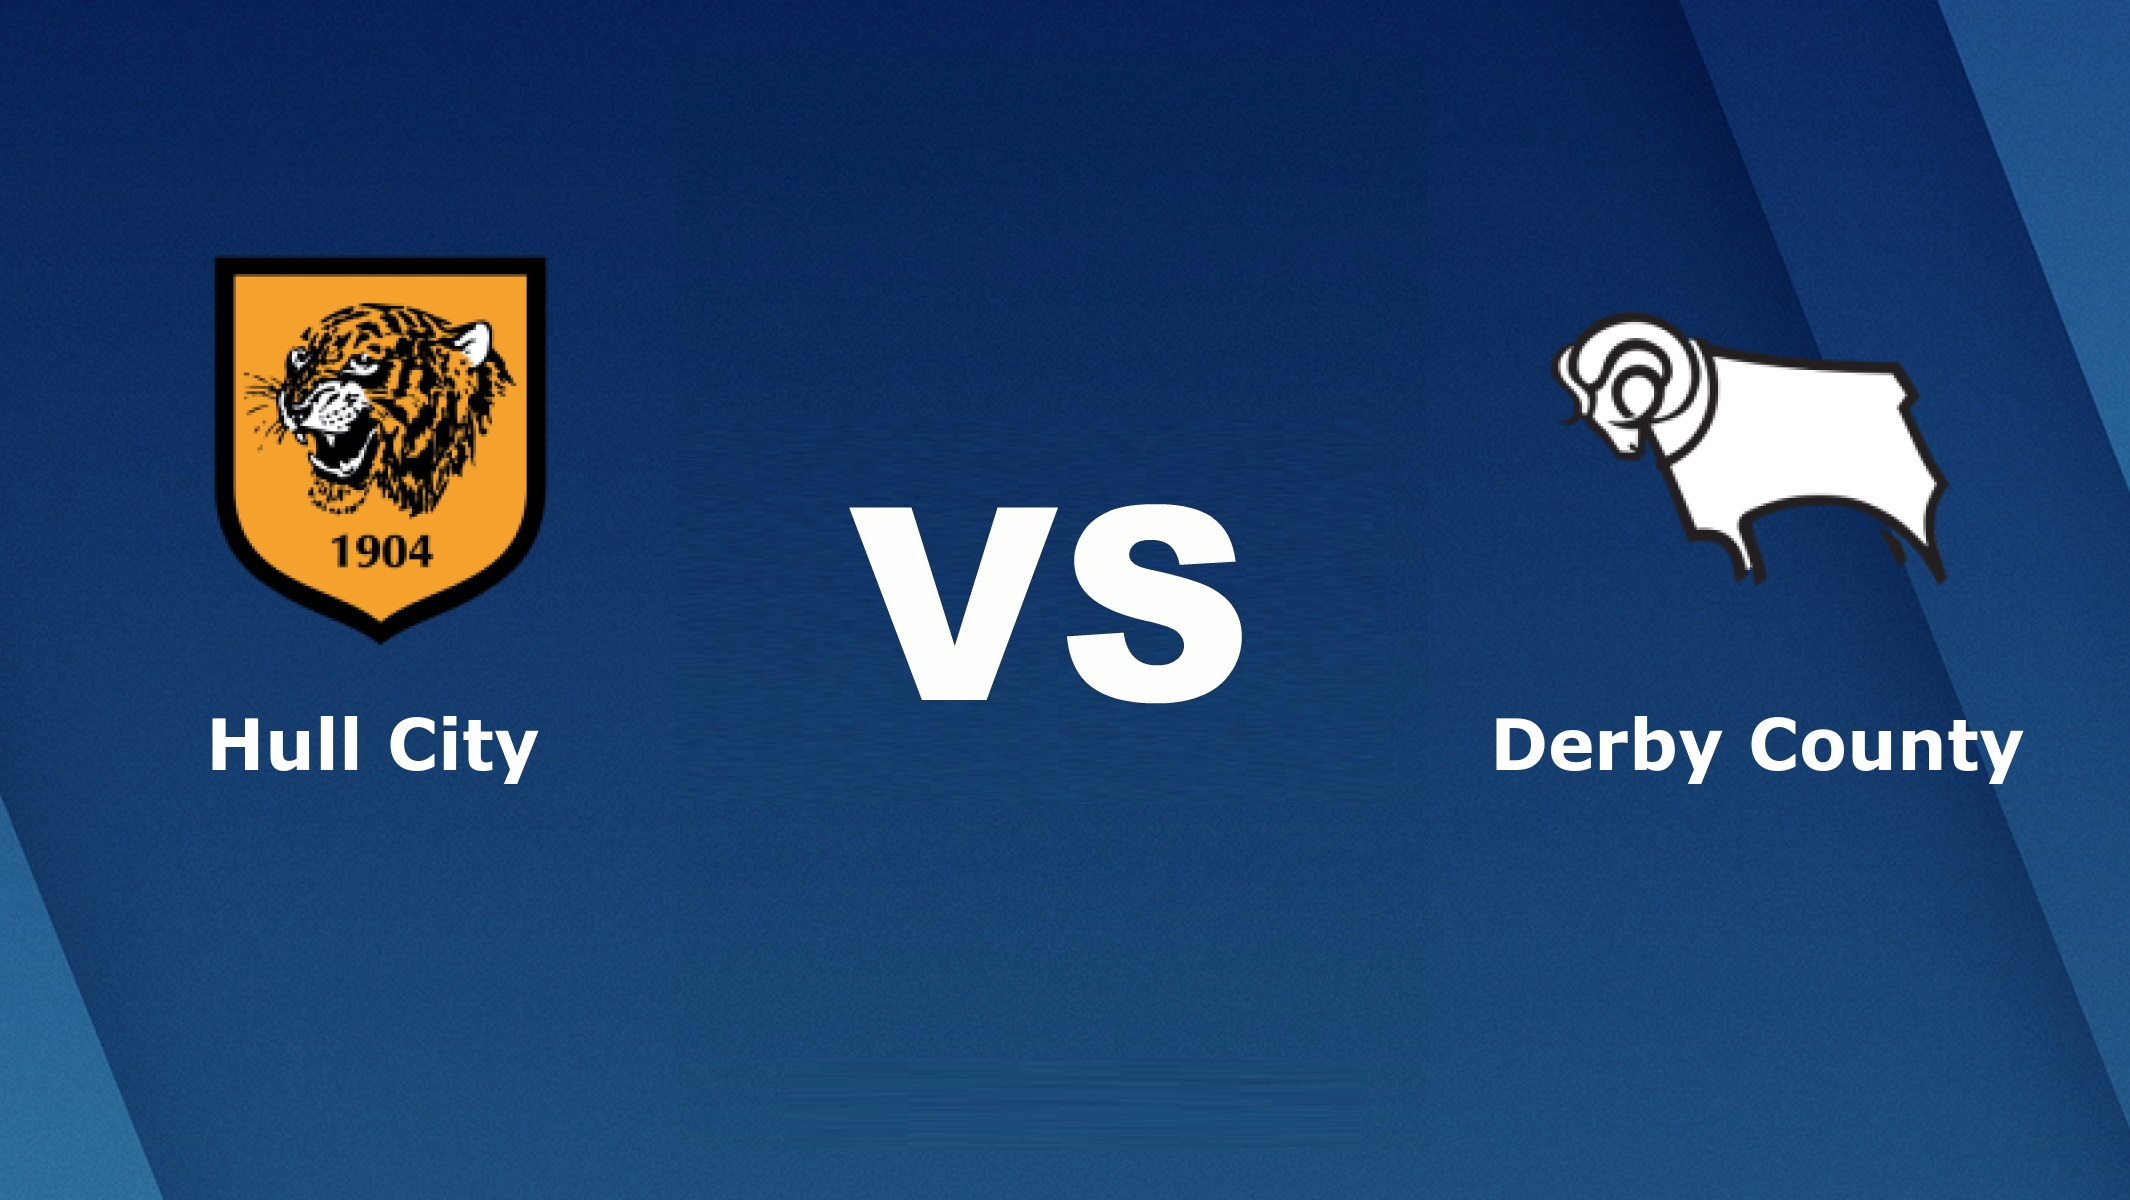 Nonton Live Streaming Hull City vs Derby County Malam Hari Ini